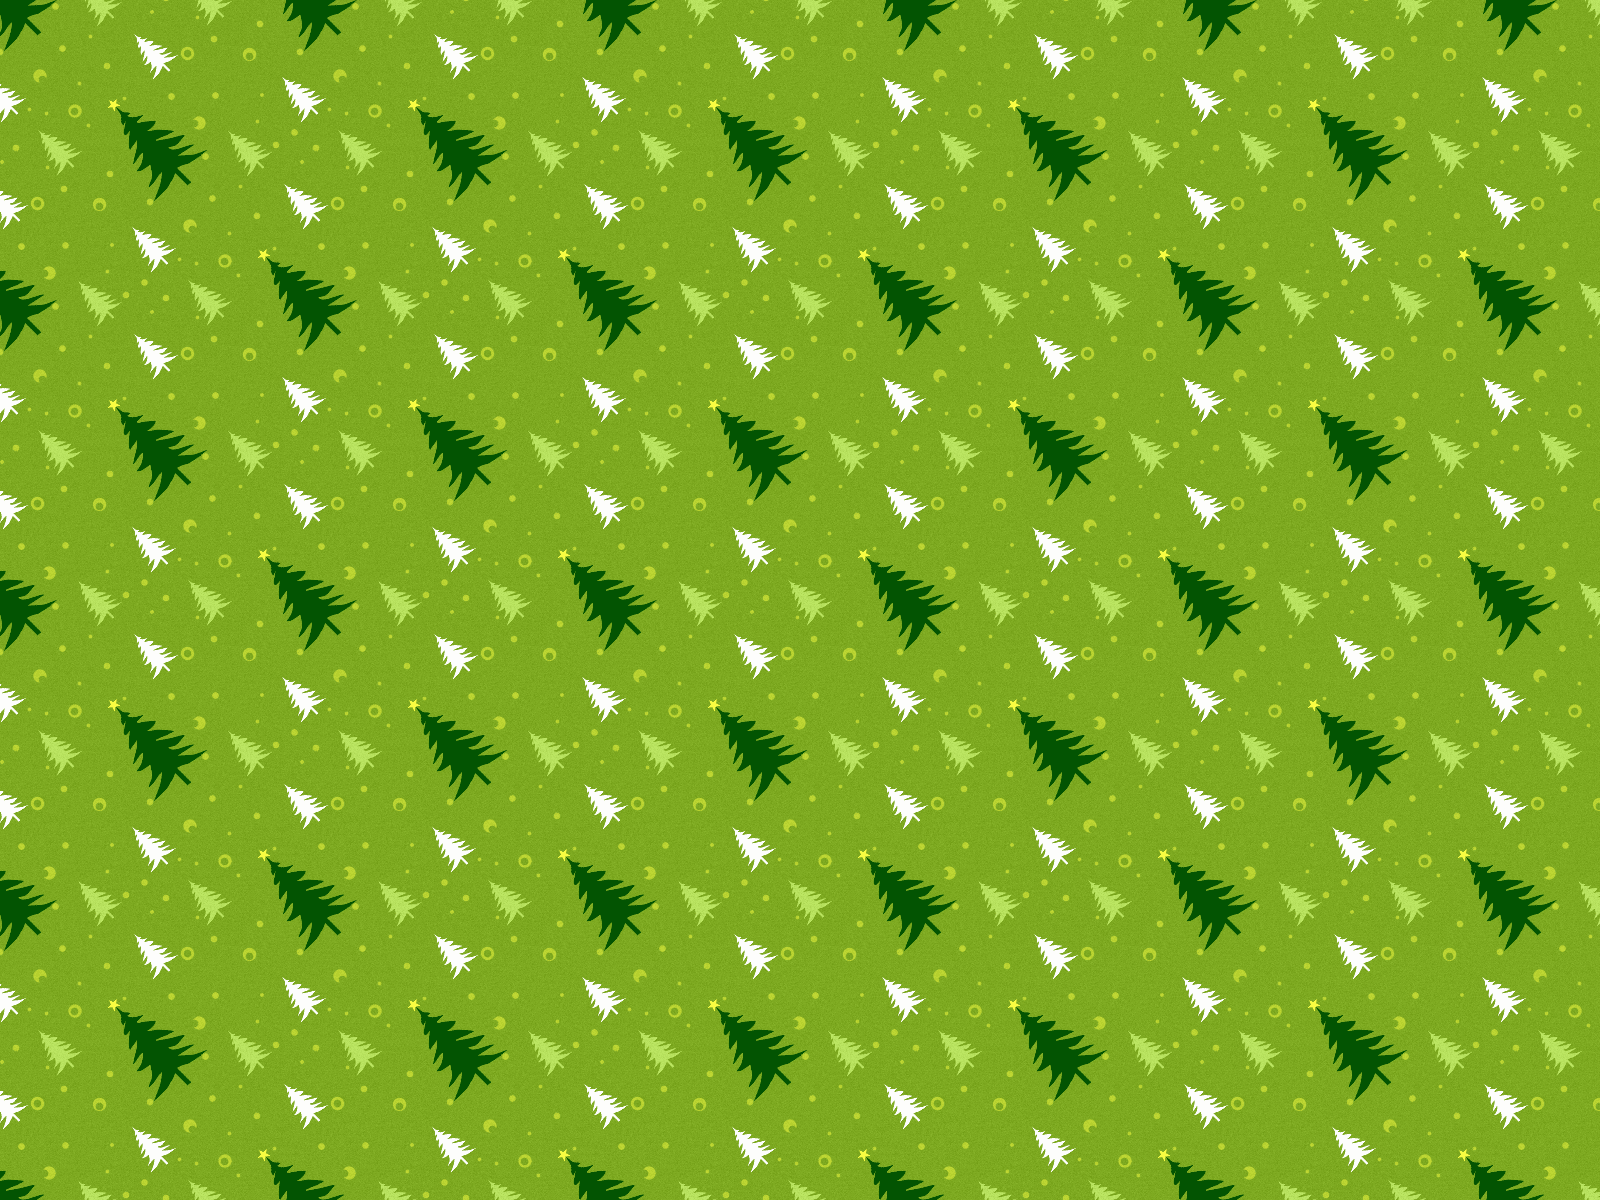 Christmas Backgrounds Wallpapers Photoshop Patterns 1600x1200